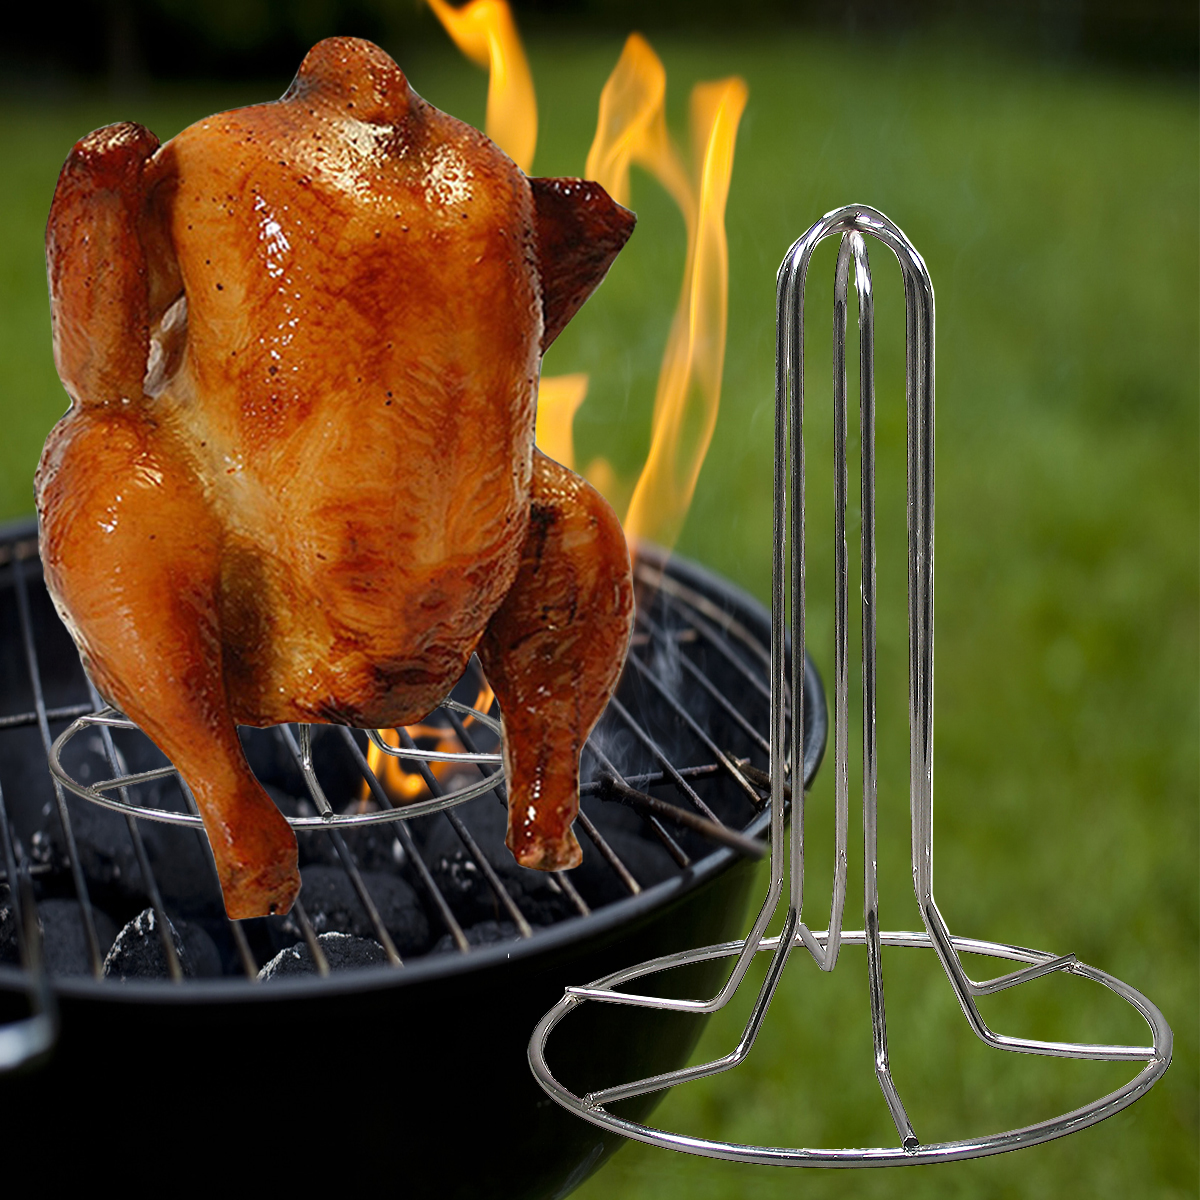 Weston Turkey Vertical Poultry Roaster Stand Rack Oven Baked Smoking Grilling Barbecue